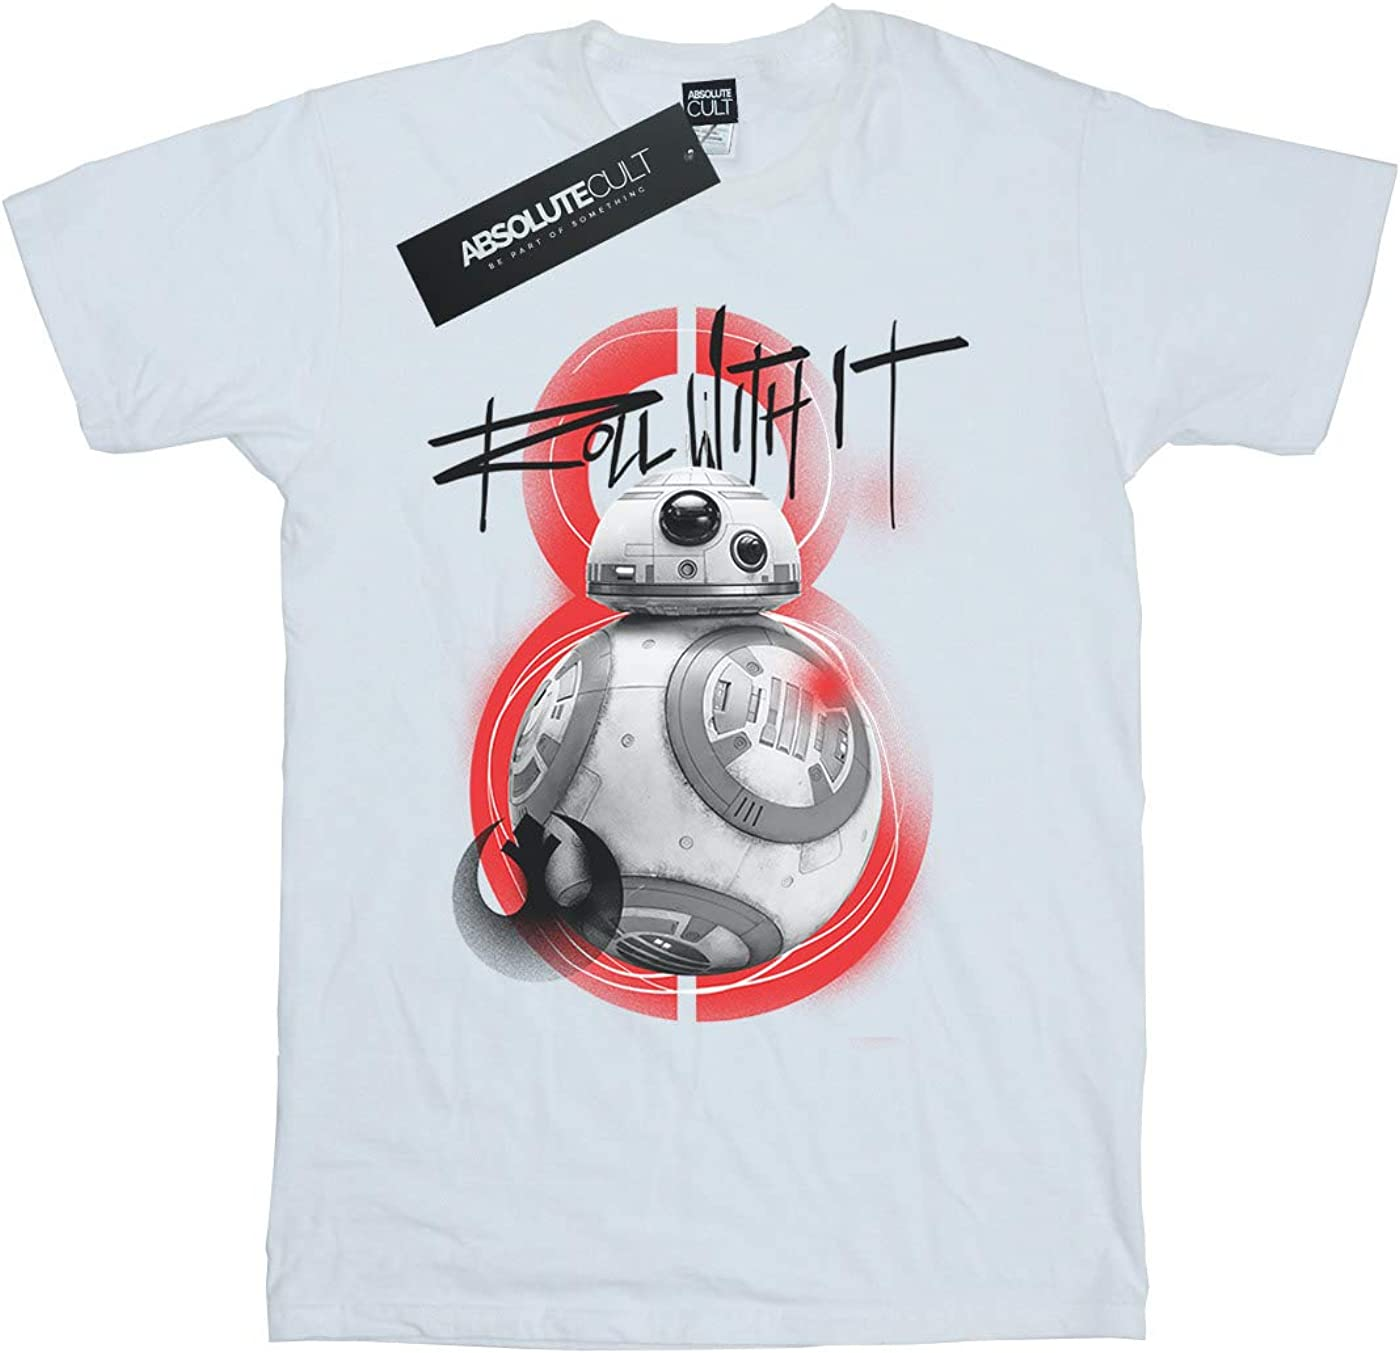 STAR WARS Boys The Last Jedi BB-8 Roll with It T-Shirt 5-6 Years White